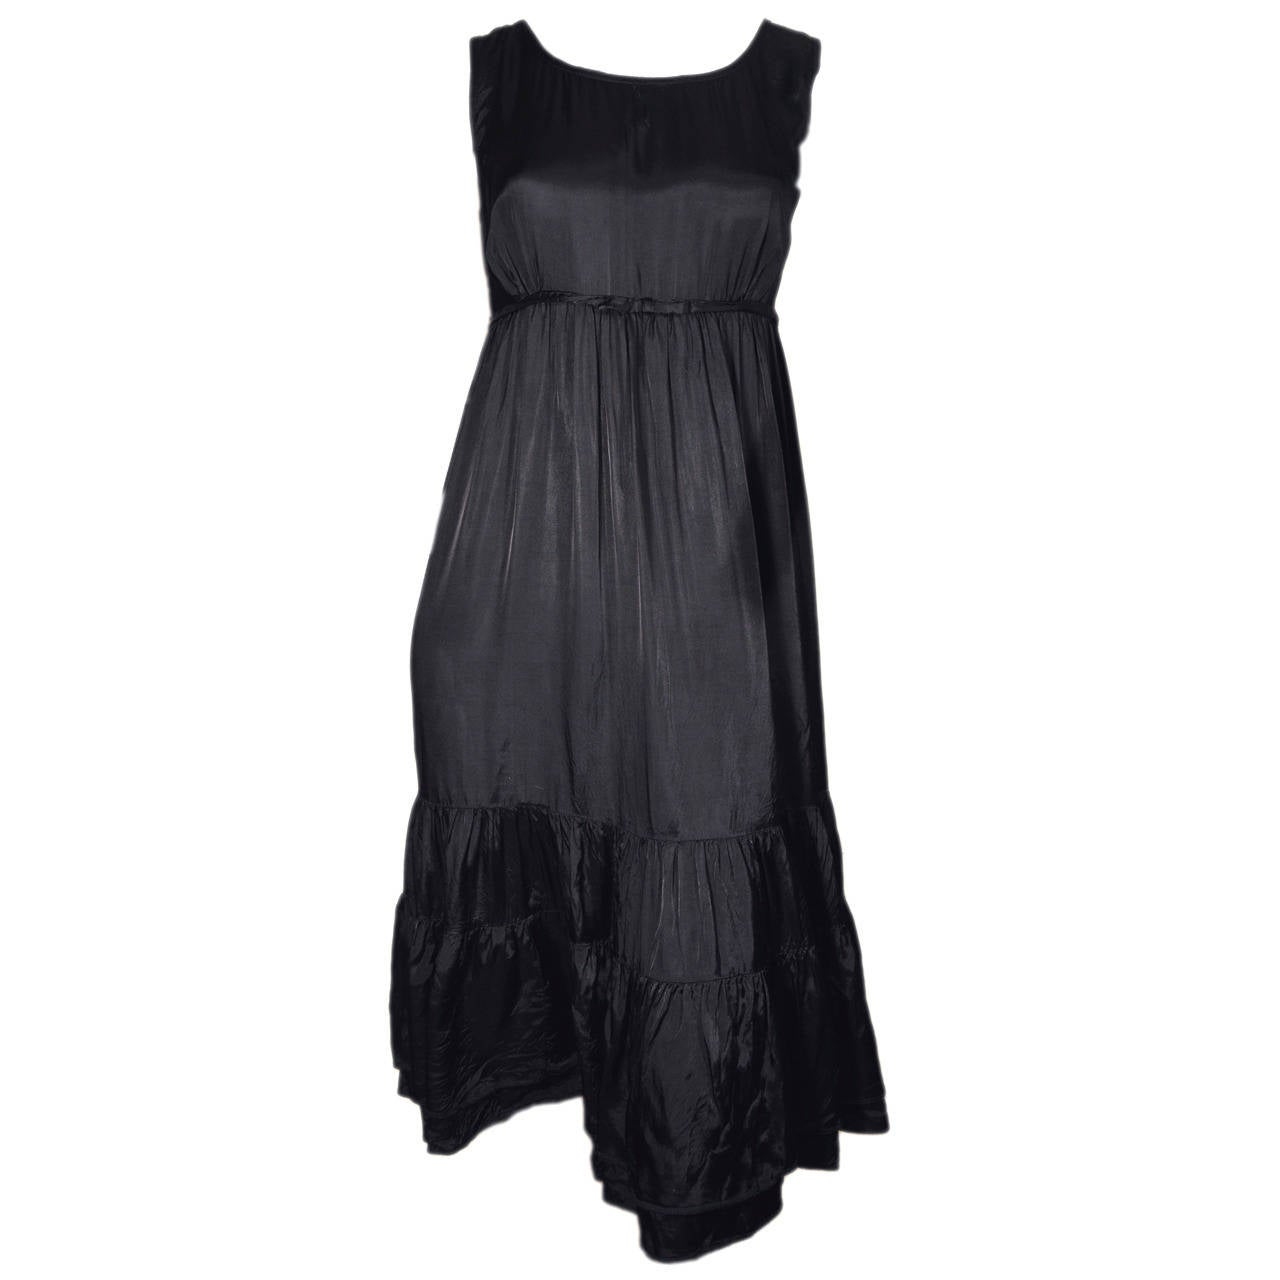 Comme des Garcons Black Rayon Tiered Dress